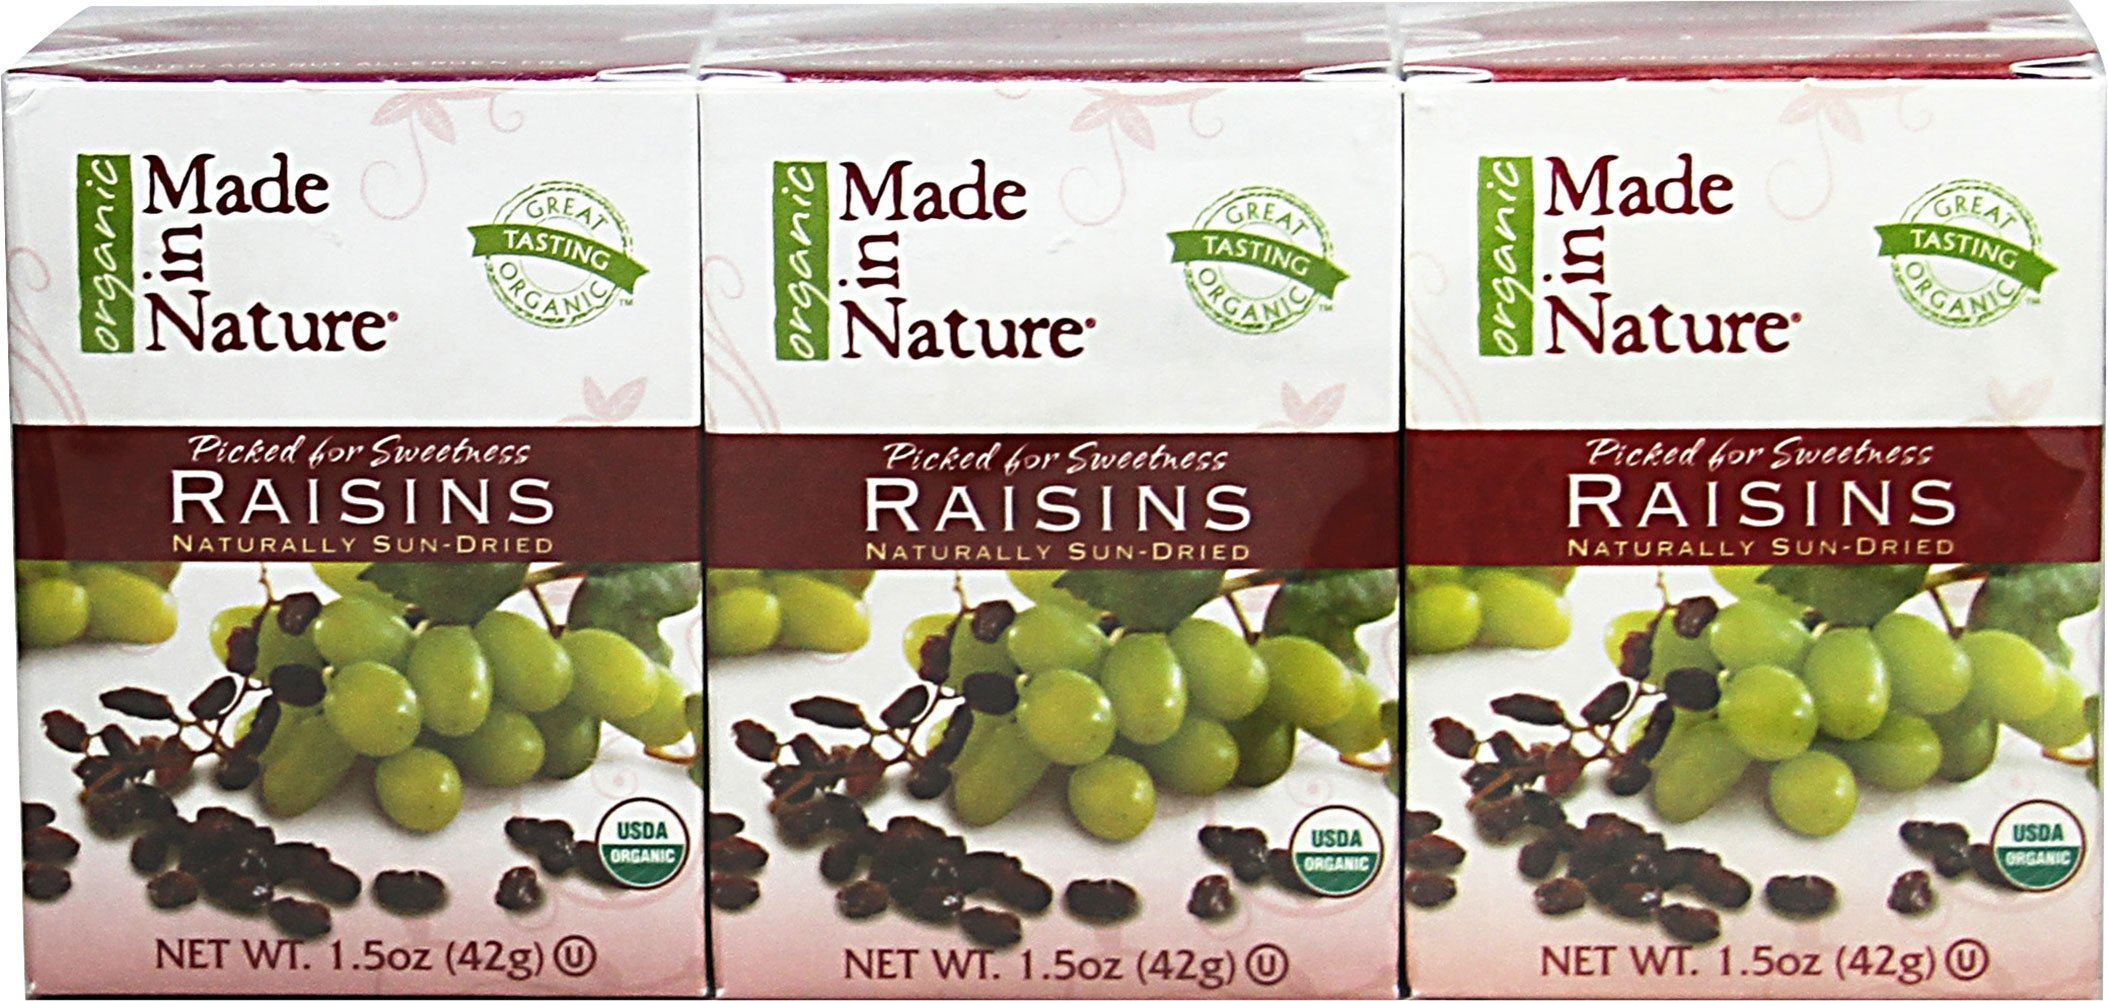 Made In Nature Thompson Seedless Raisins 1.5 Oz -Pack of 24